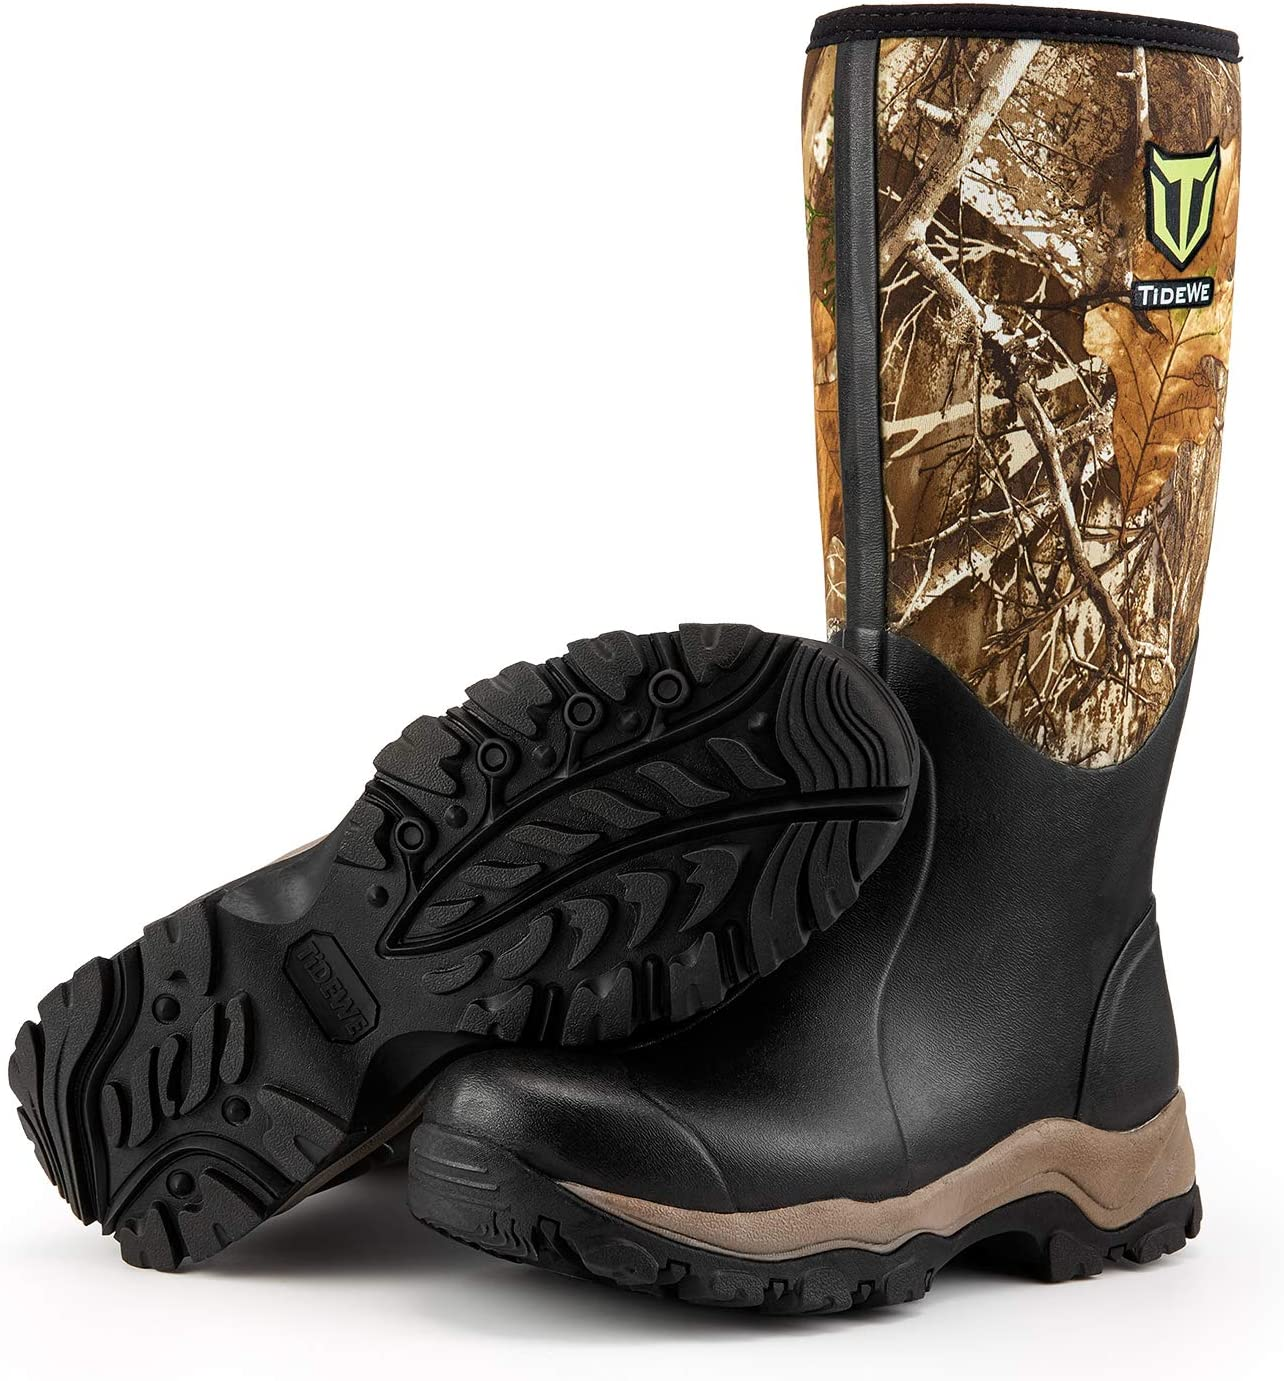 TIDEWE Hunting Boot for Men, Insulated Waterproof Durable 16